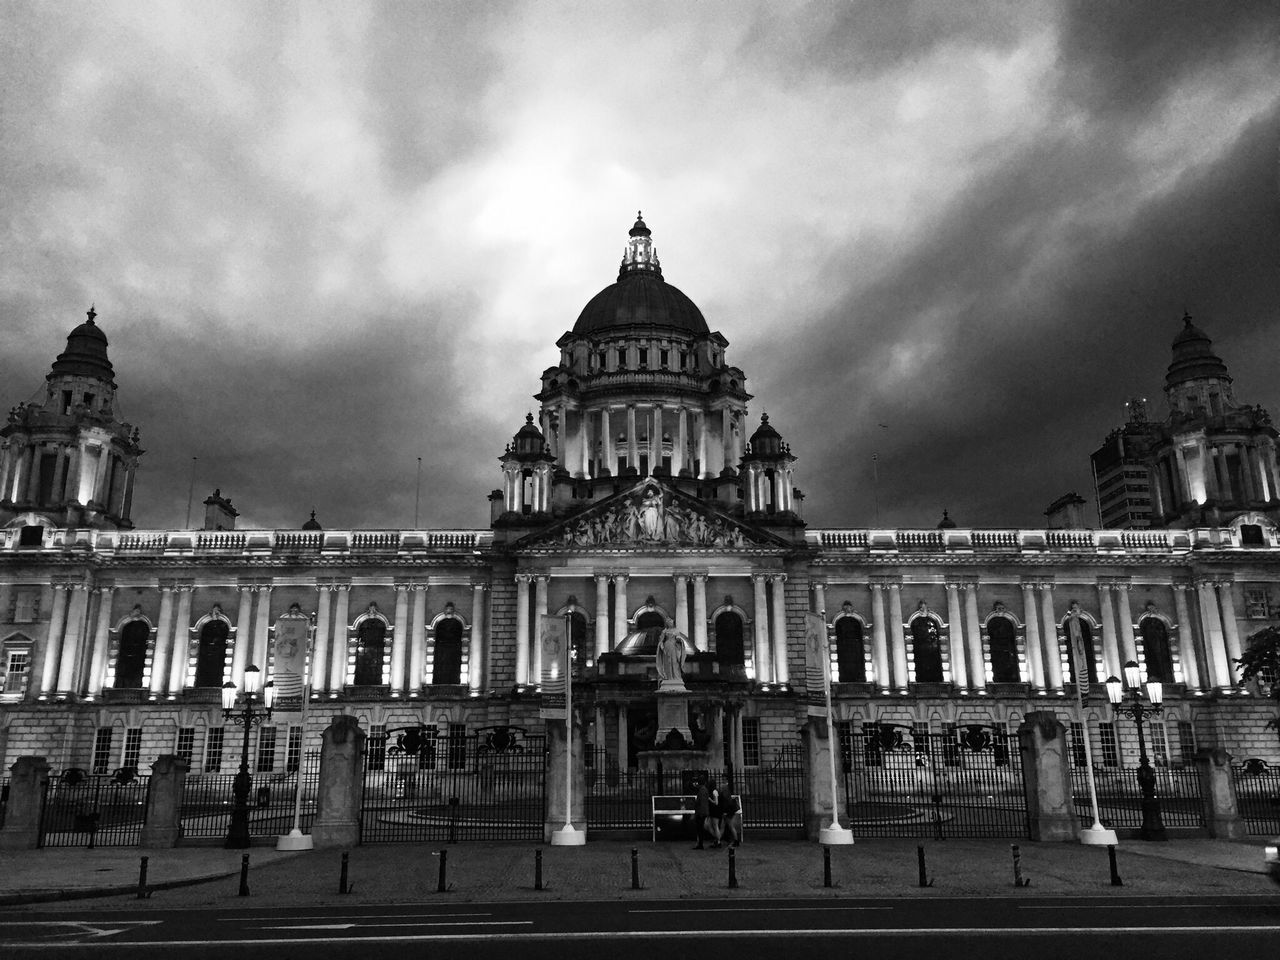 City Hall Belfast. What Who Where Architecture Building Exterior Sky Built Structure Cloud - Sky Travel Destinations Dome Architectural Column Government Outdoors Façade City Large Group Of People Day EyeEm Masterclass Found On The Roll Architecture Famous Places Getty X EyeEm Architecture_collection EyeEm Famous Building Eye4photography  EyeEm Gallery